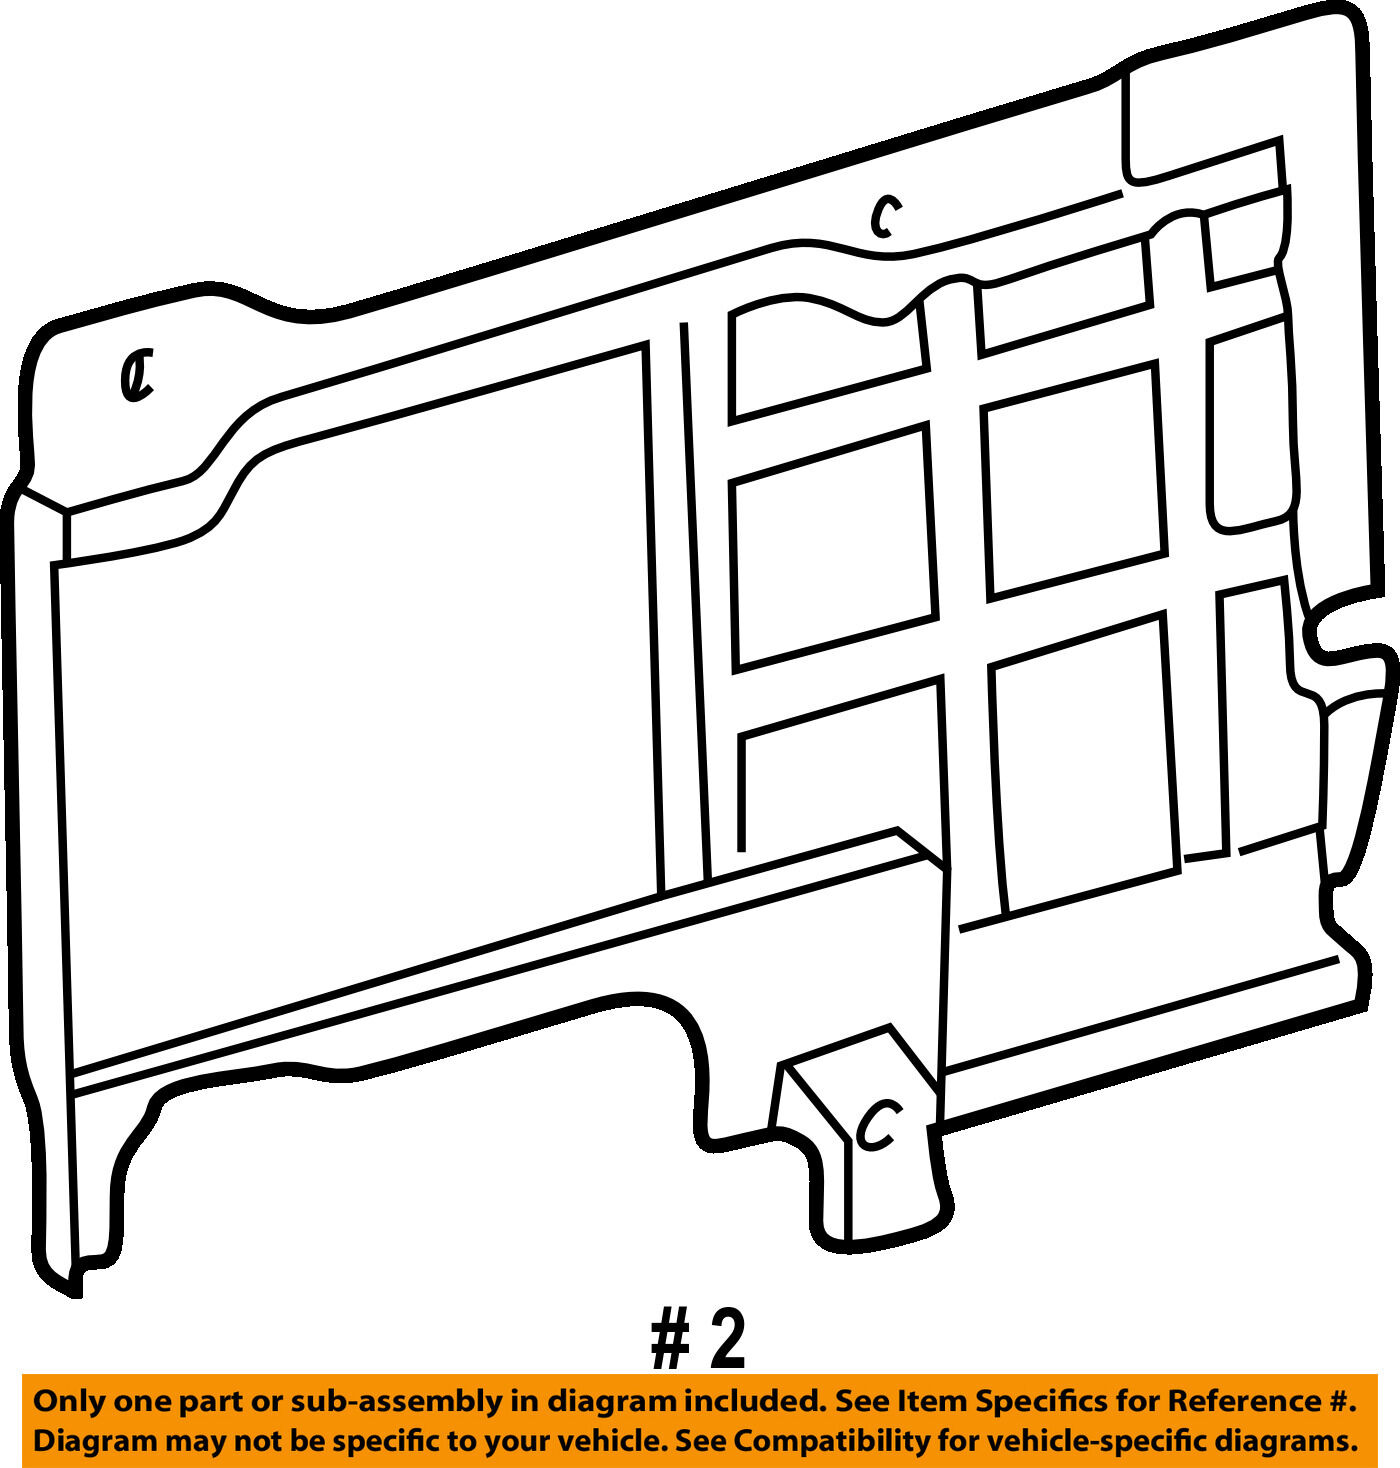 Mercury Mystique Fuse Box Wiring Diagram Pictures 1999 98 Simple Guide About U2022 Location